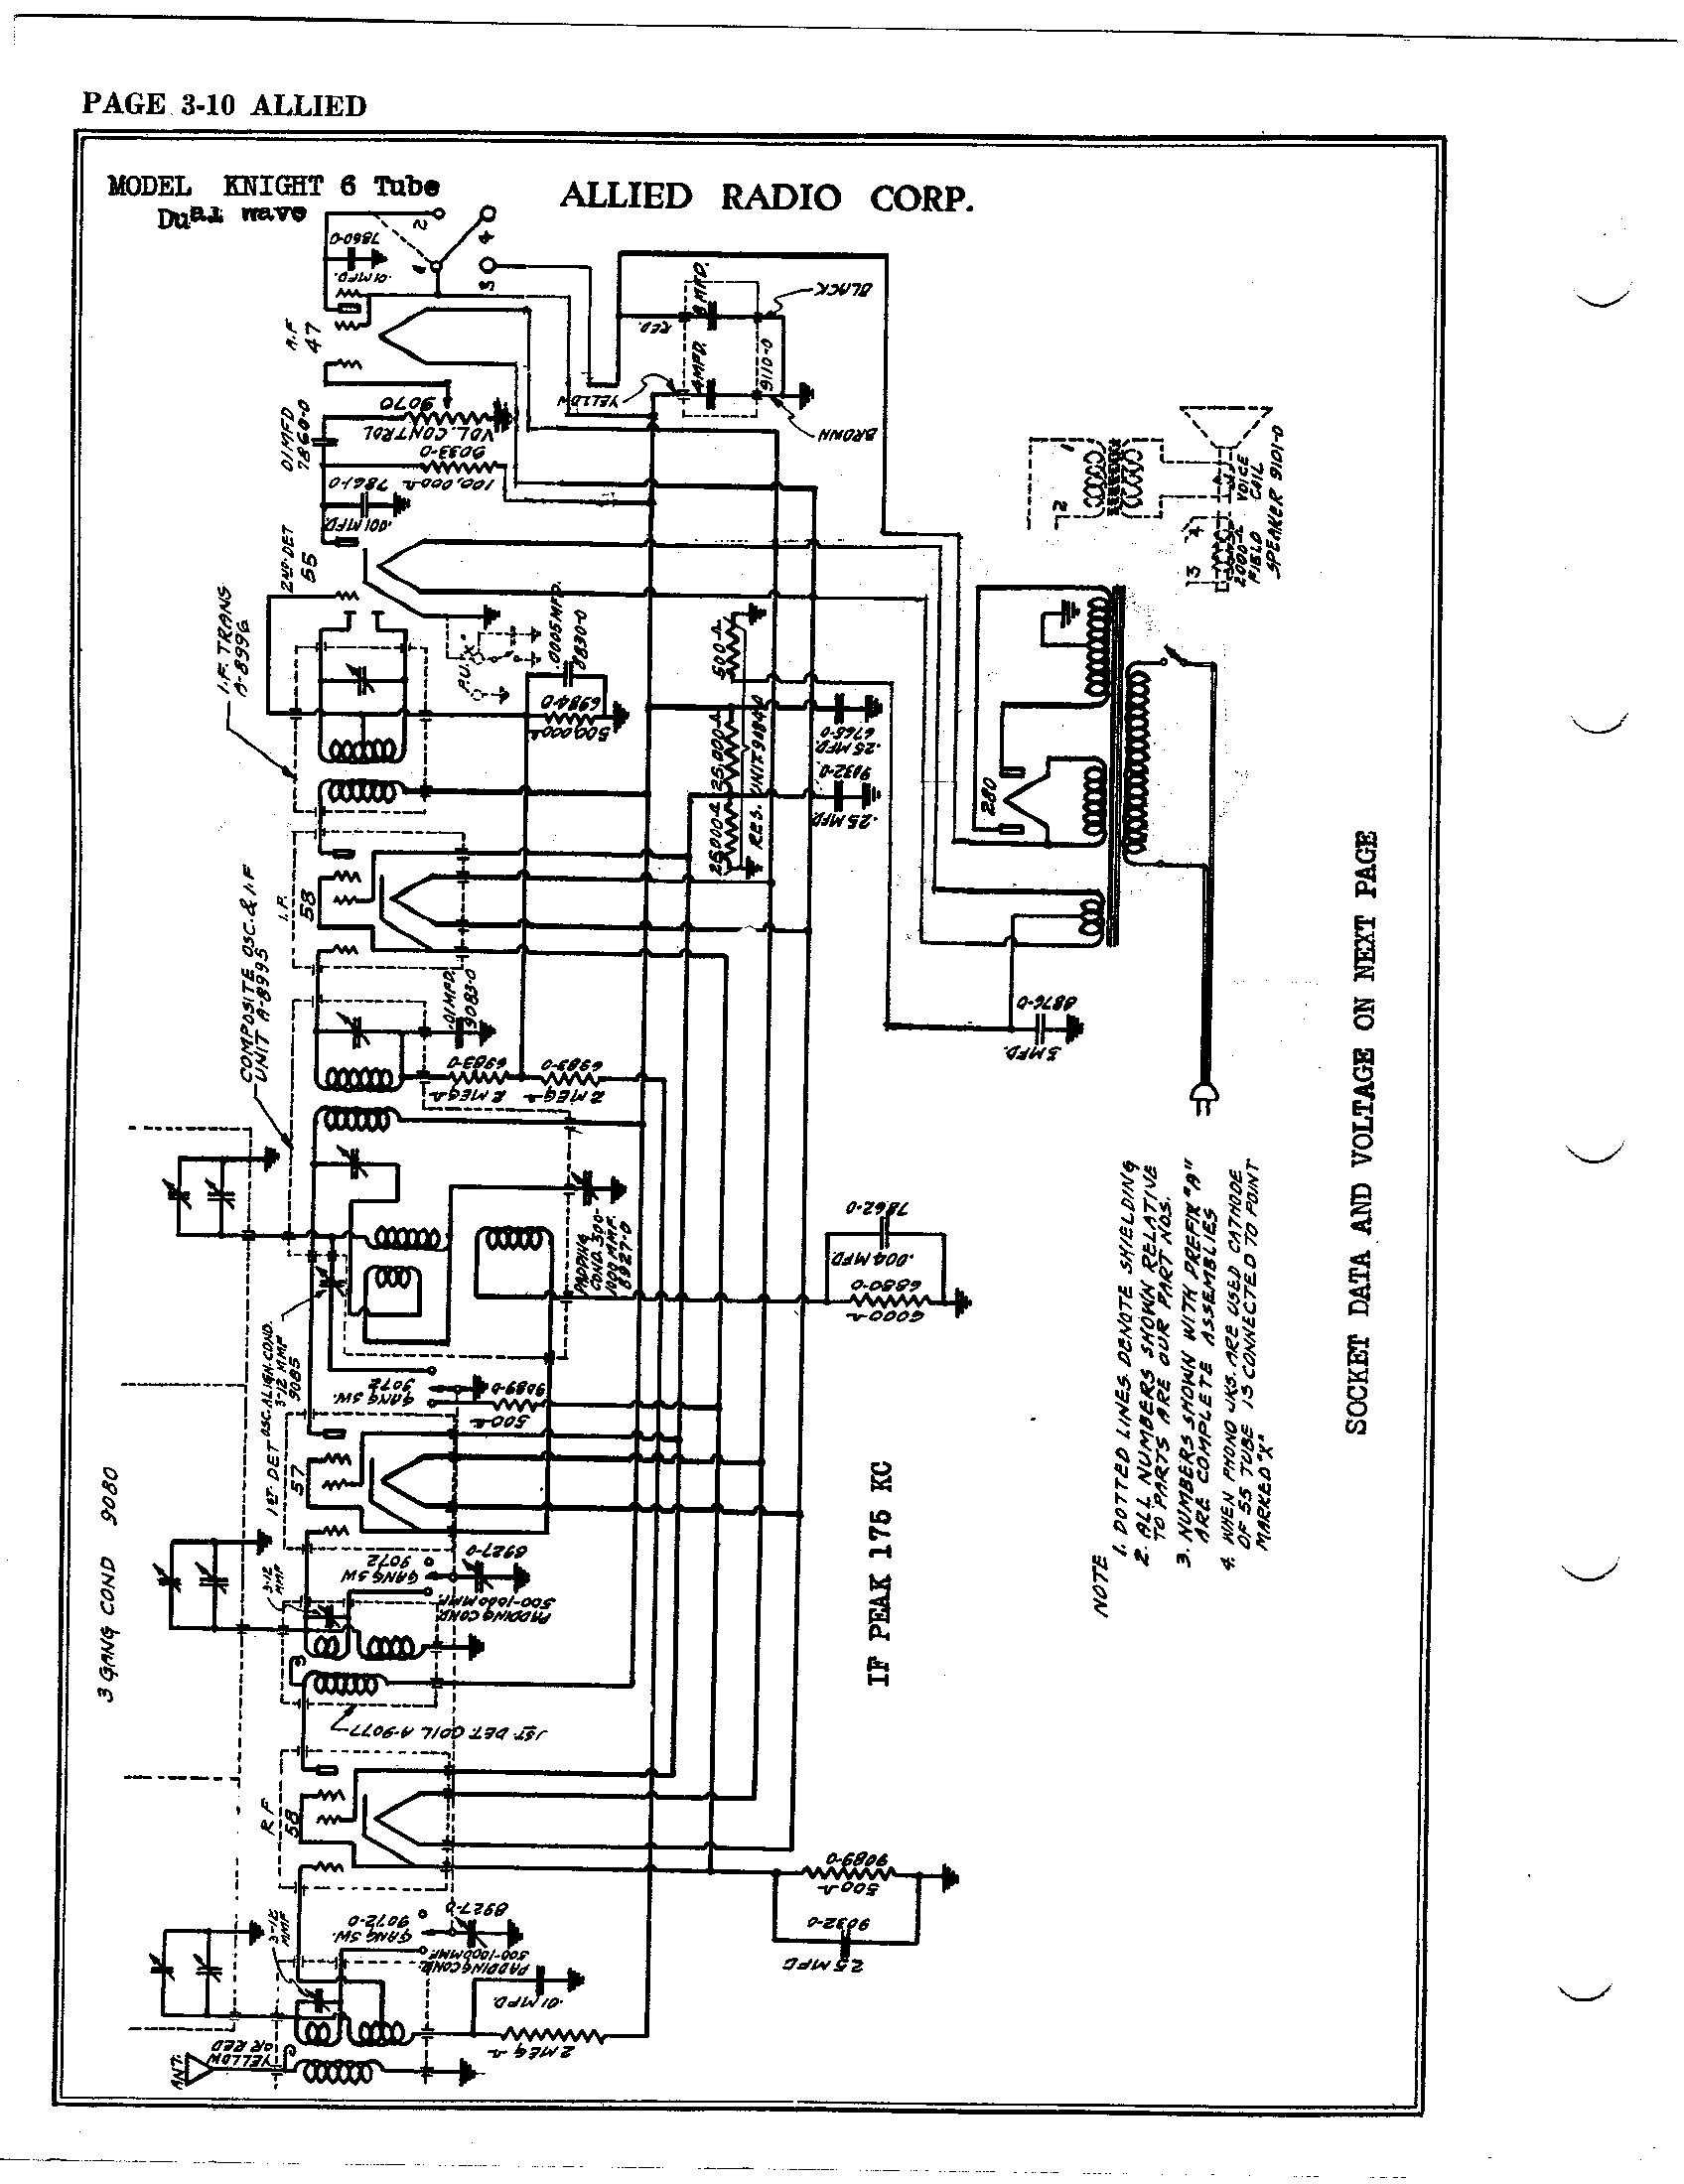 Radio Schematics Diagrams Ciplatadalafilfo